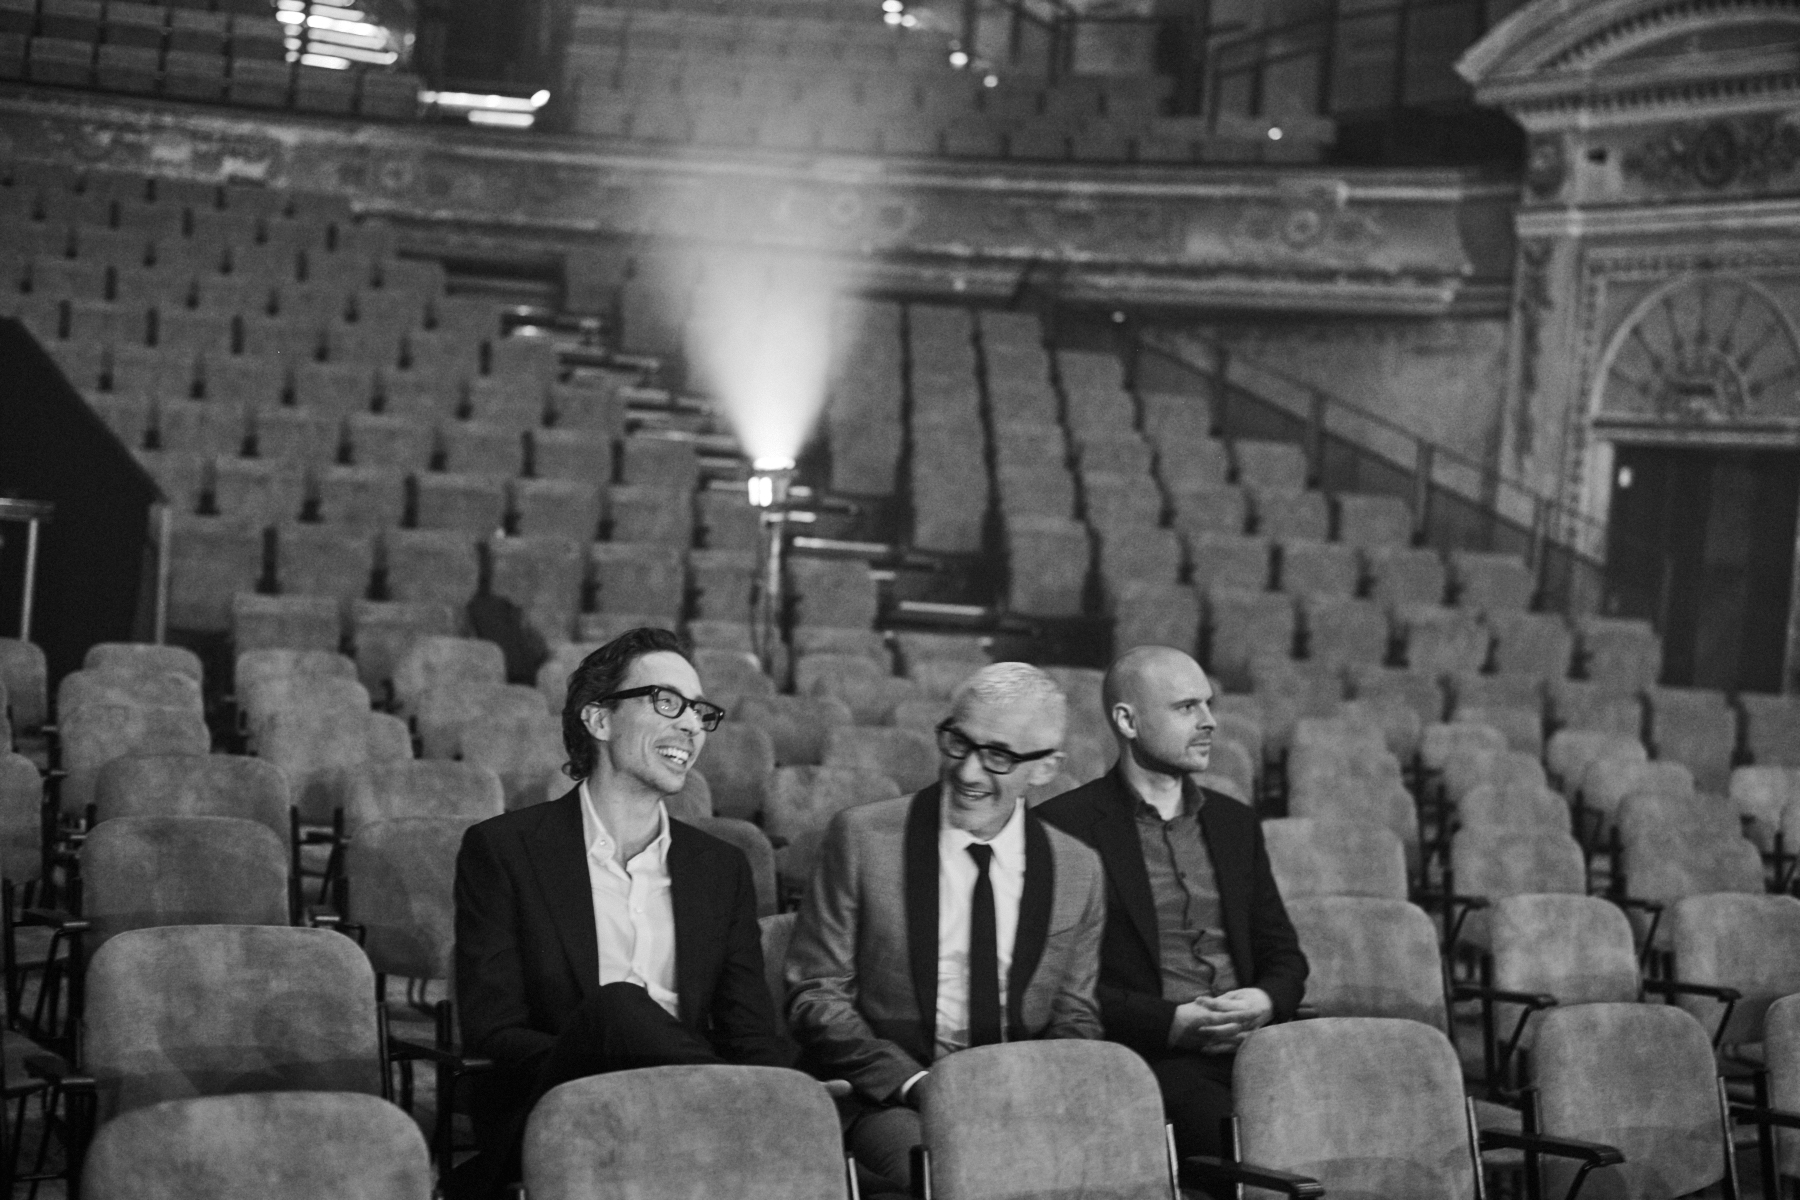 Black and White image of Above & Beyond in a theatre.